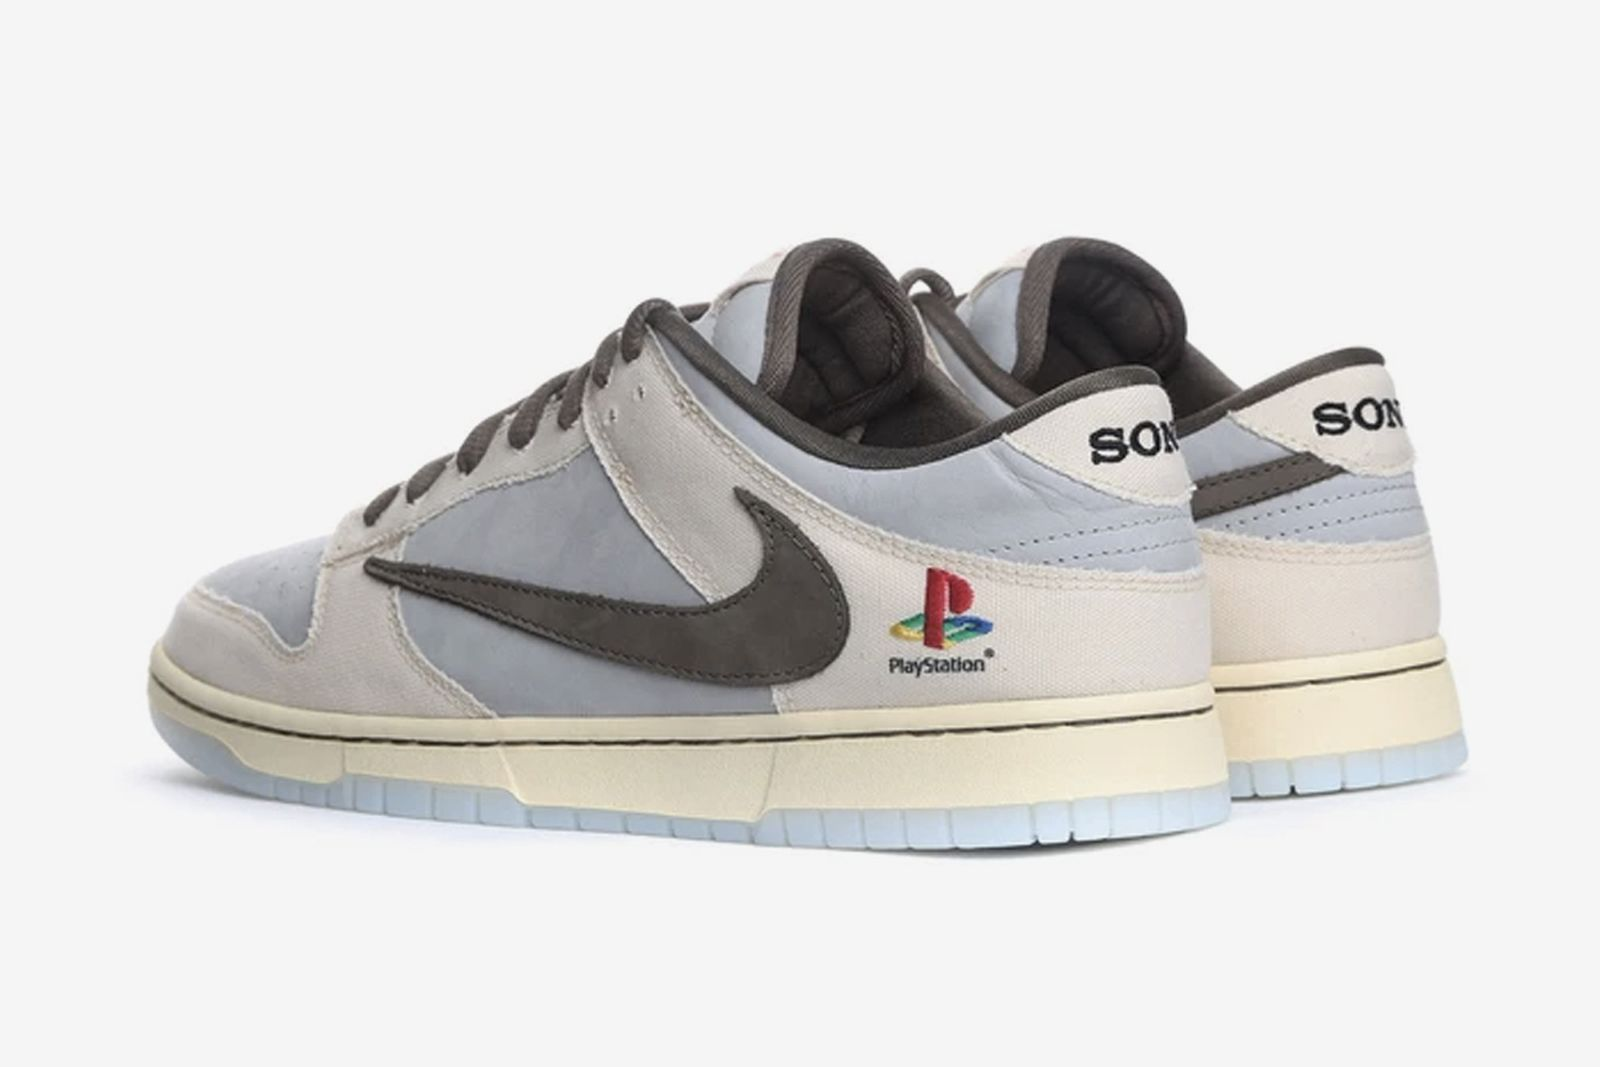 travis-scott-playstation-nike-dunk-low-release-date-price-03